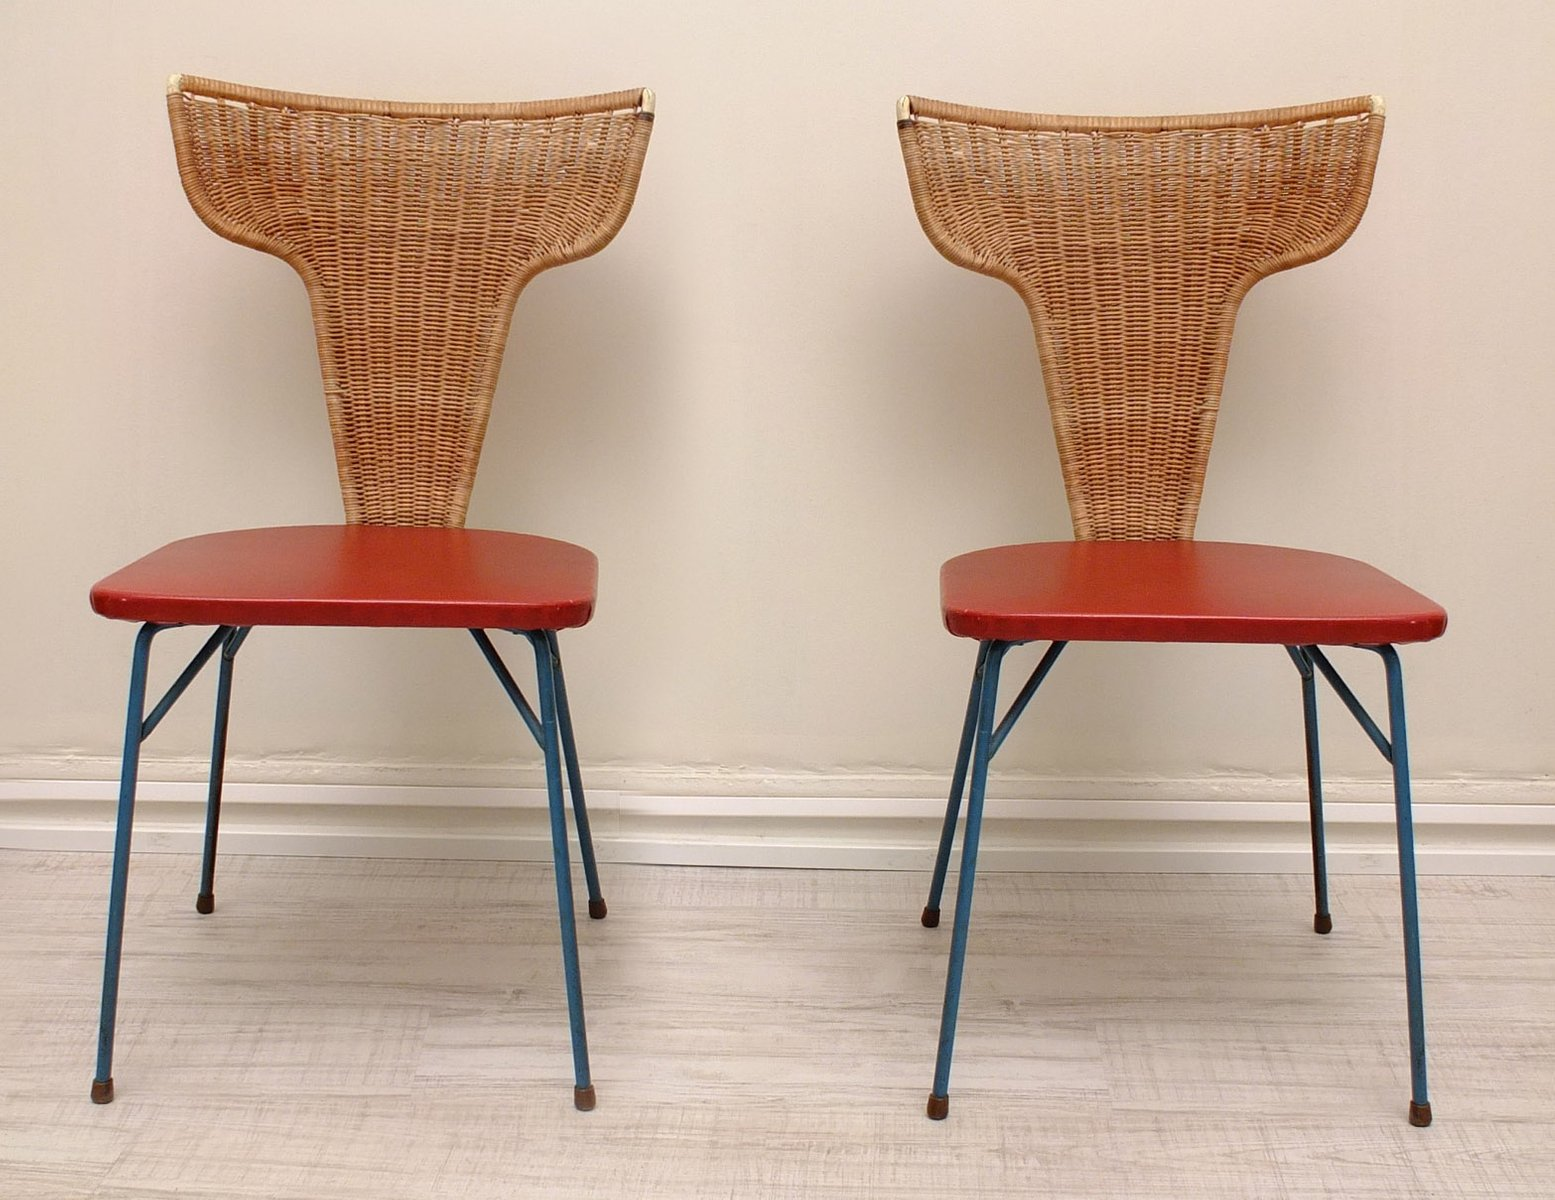 Rattan Chairs Italian Iron And Rattan Chairs 1950s Set Of 2